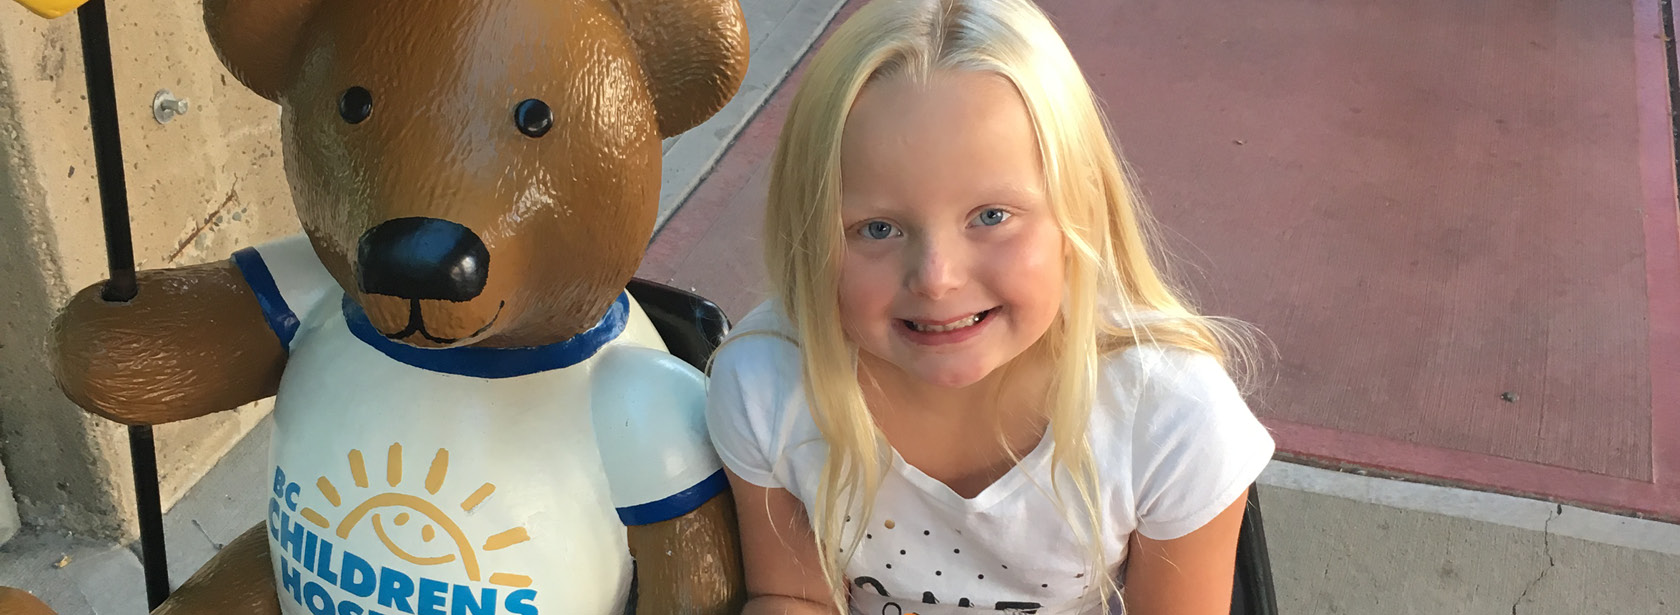 "A young girl sitting on a bench beside a teddy bear wearing a shirt that says ""BC Children's Hospital"""